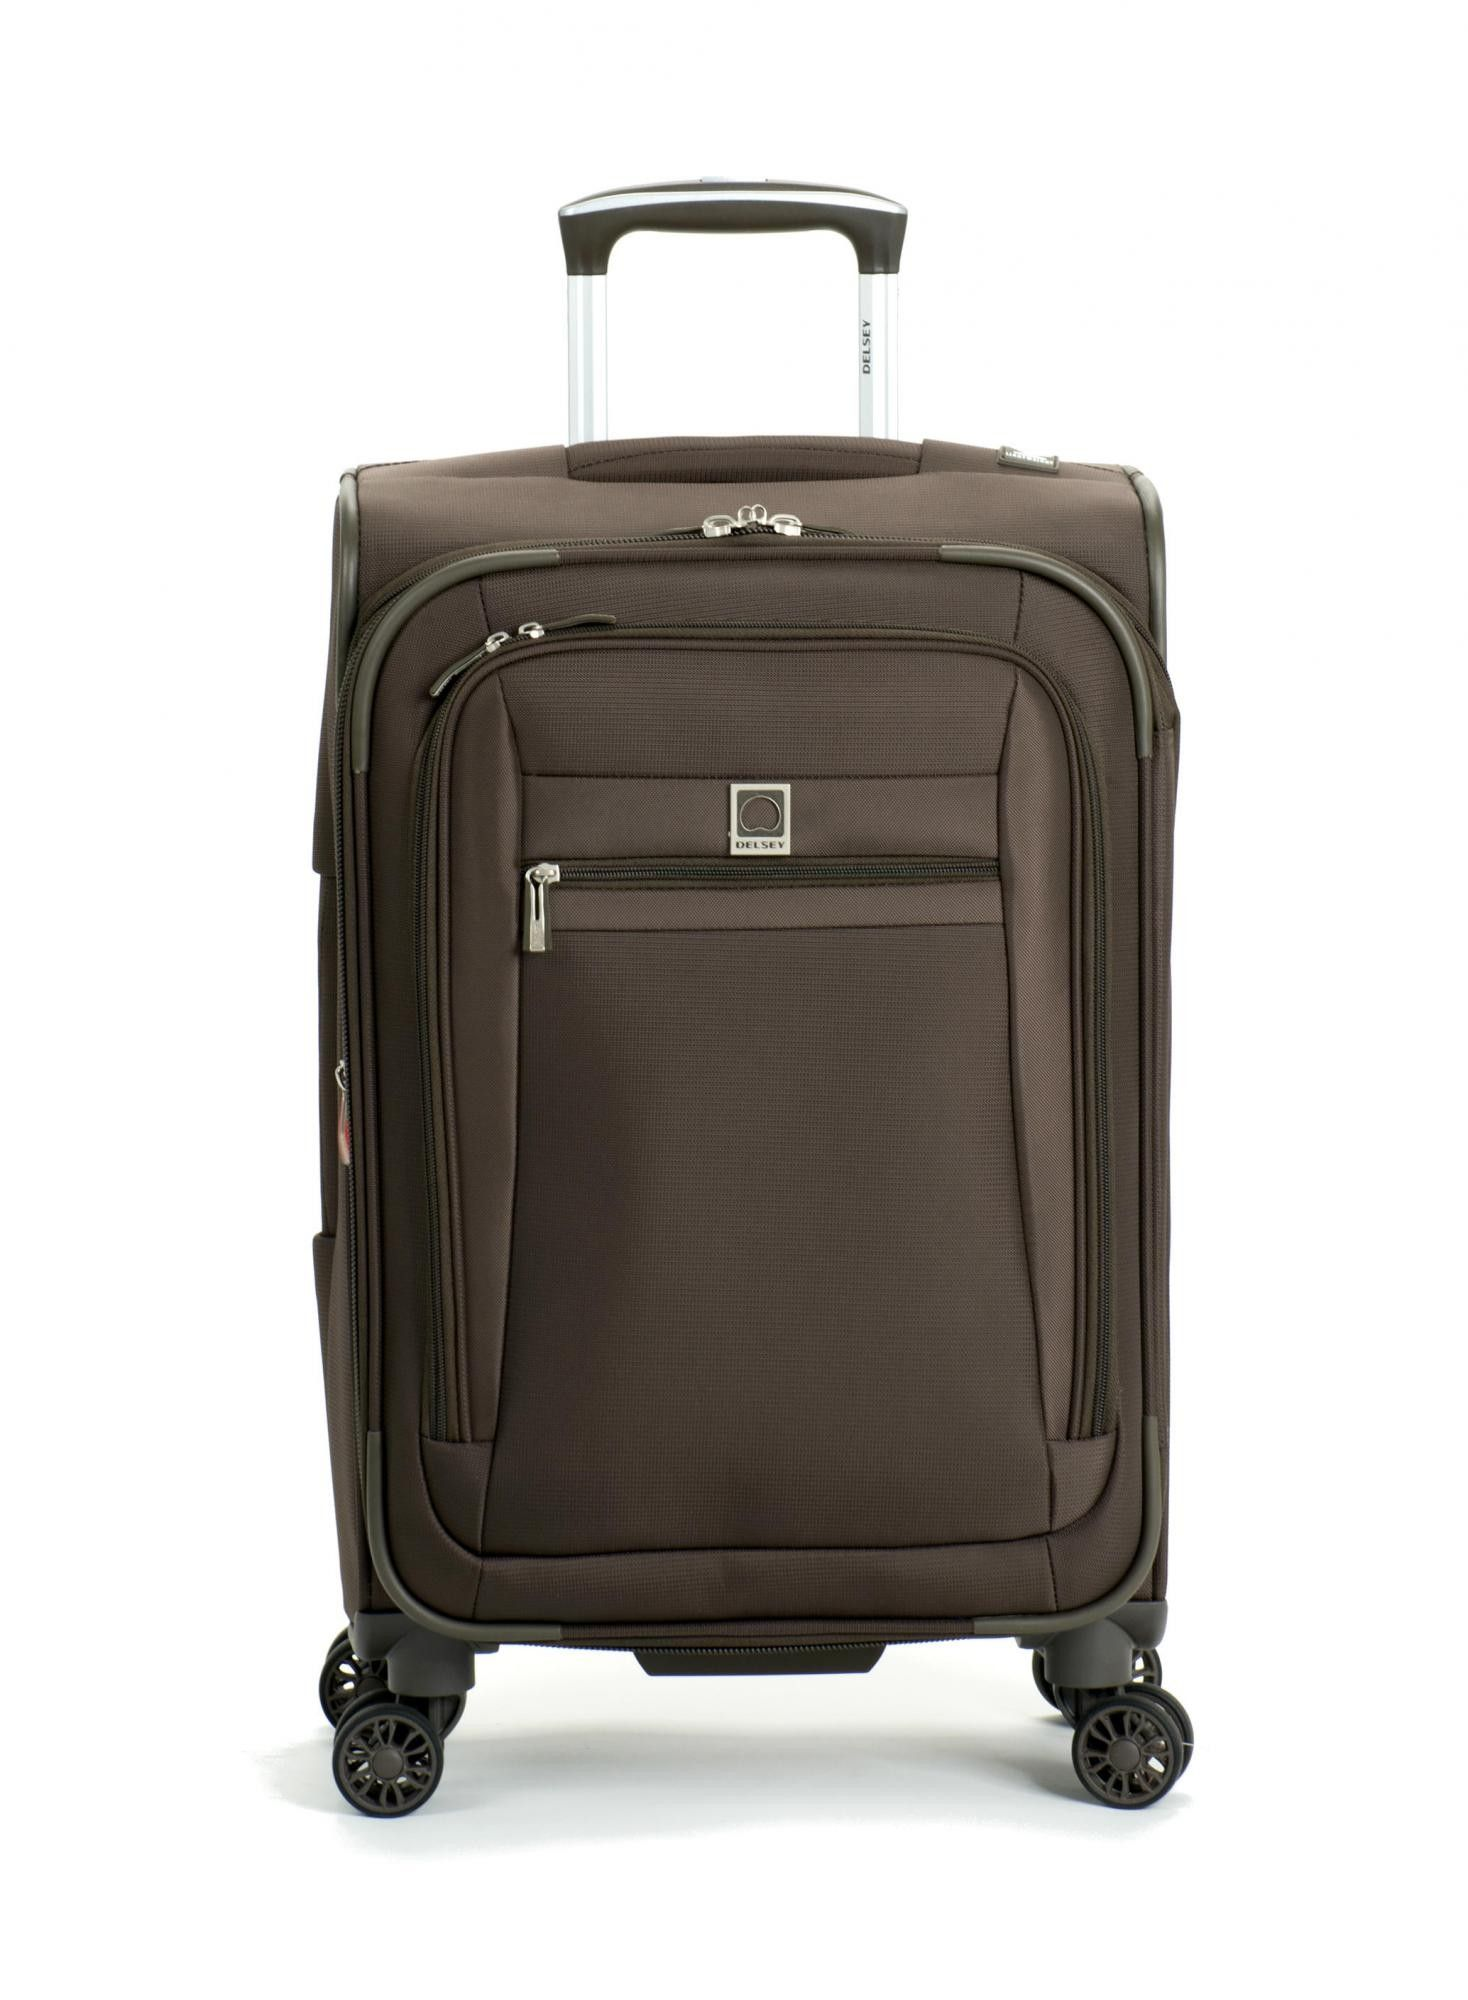 0e630bc8952 The Delsey Helium Hyperlite bags are unbelievably lightweight with maximum  packing capacity for all your traveling needs. Solidly built with spinner  wheels, ...